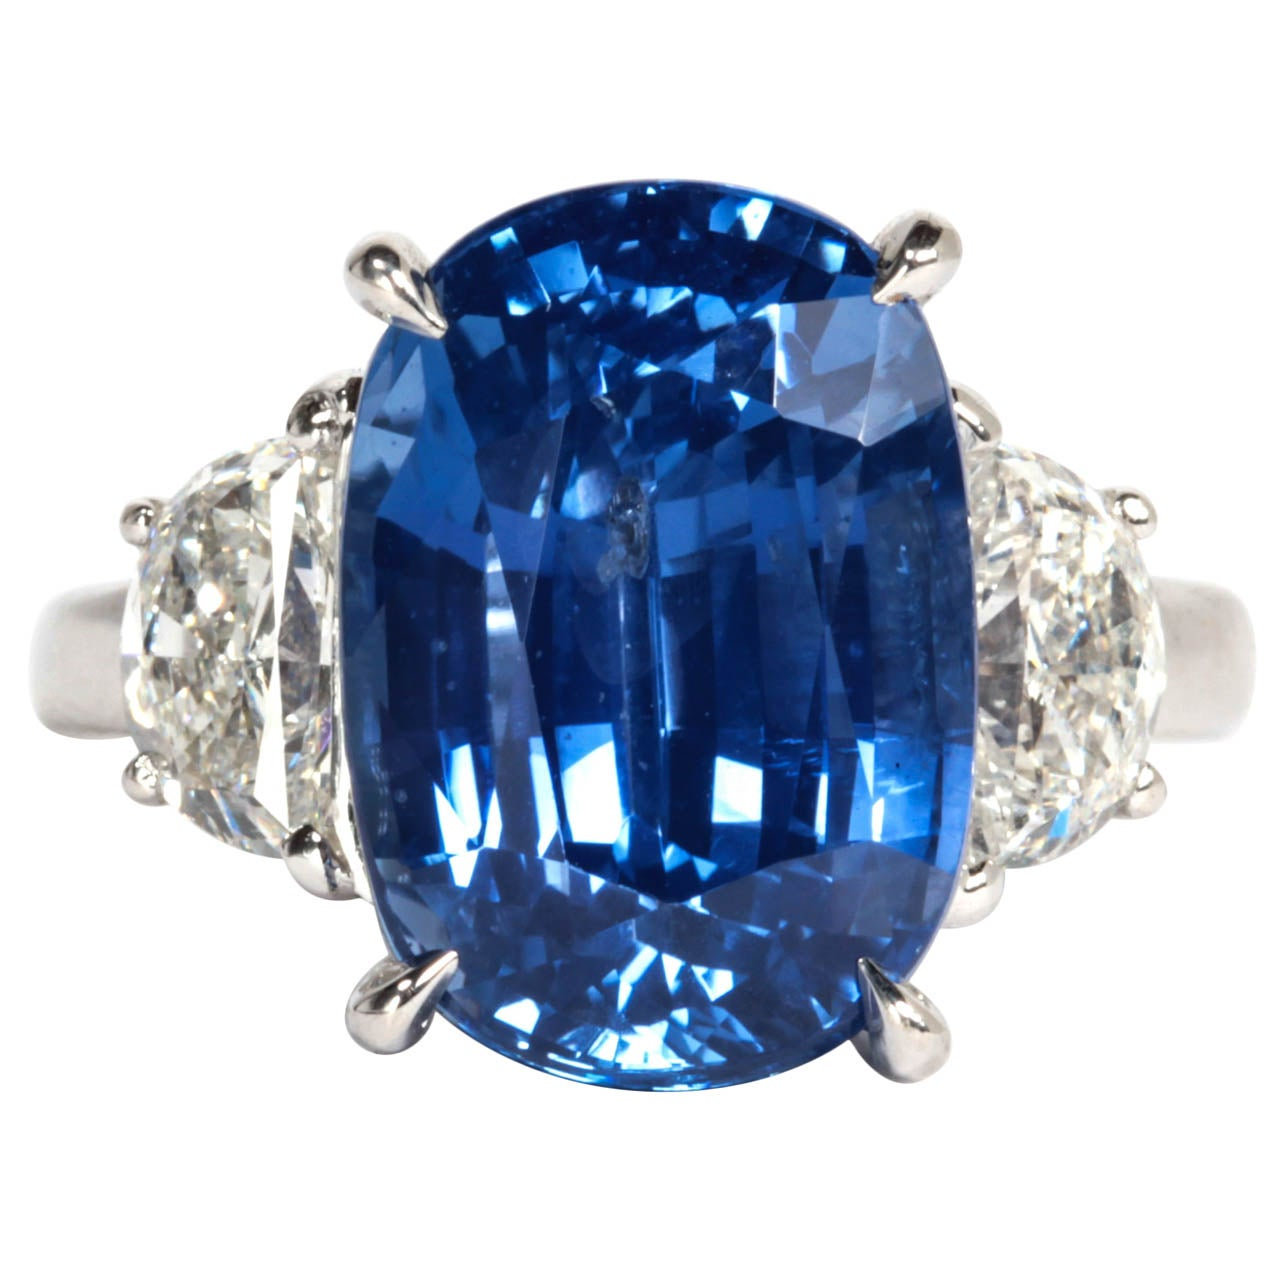 Certified Natural No Heat 11 51 Carat Cushion Cut Sapphire